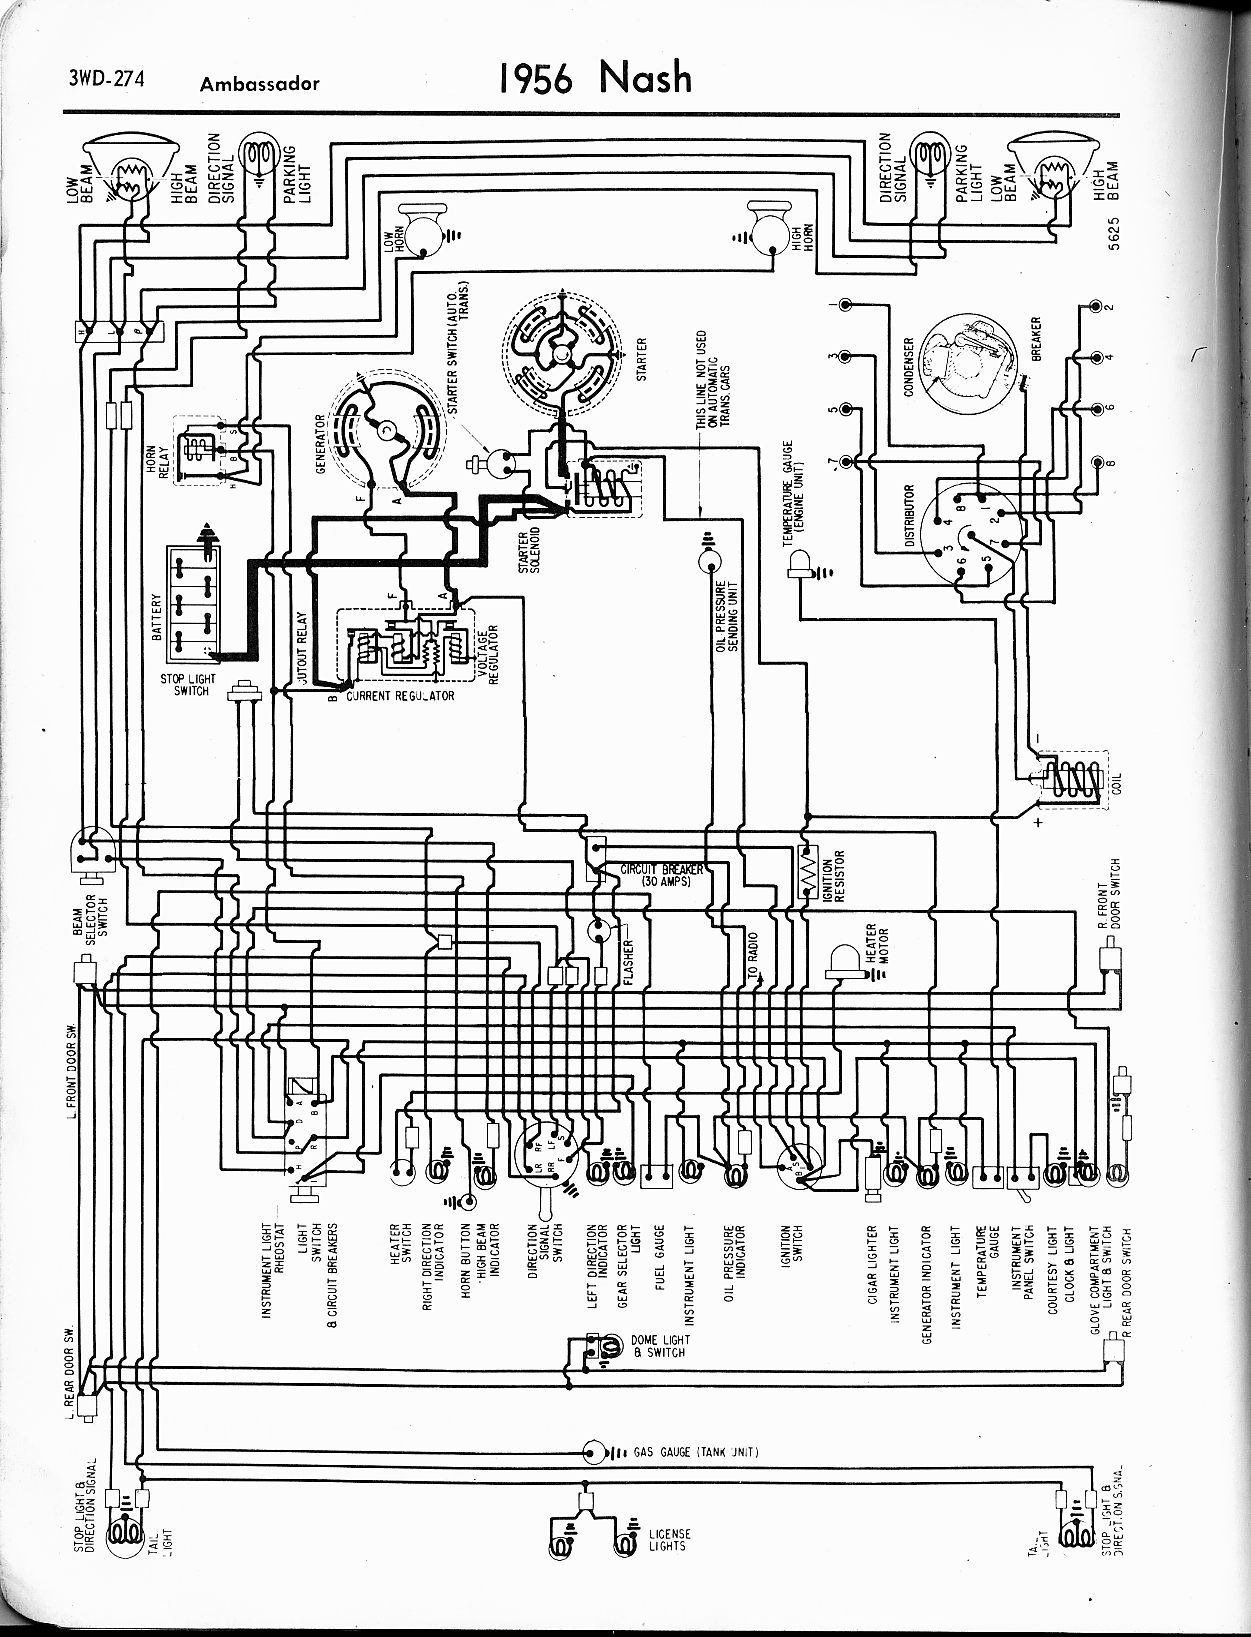 Car Light Wiring Diagrams Multiple Lights Get Free Image About Wipercar Diagram 1957 Nash Metropolitan